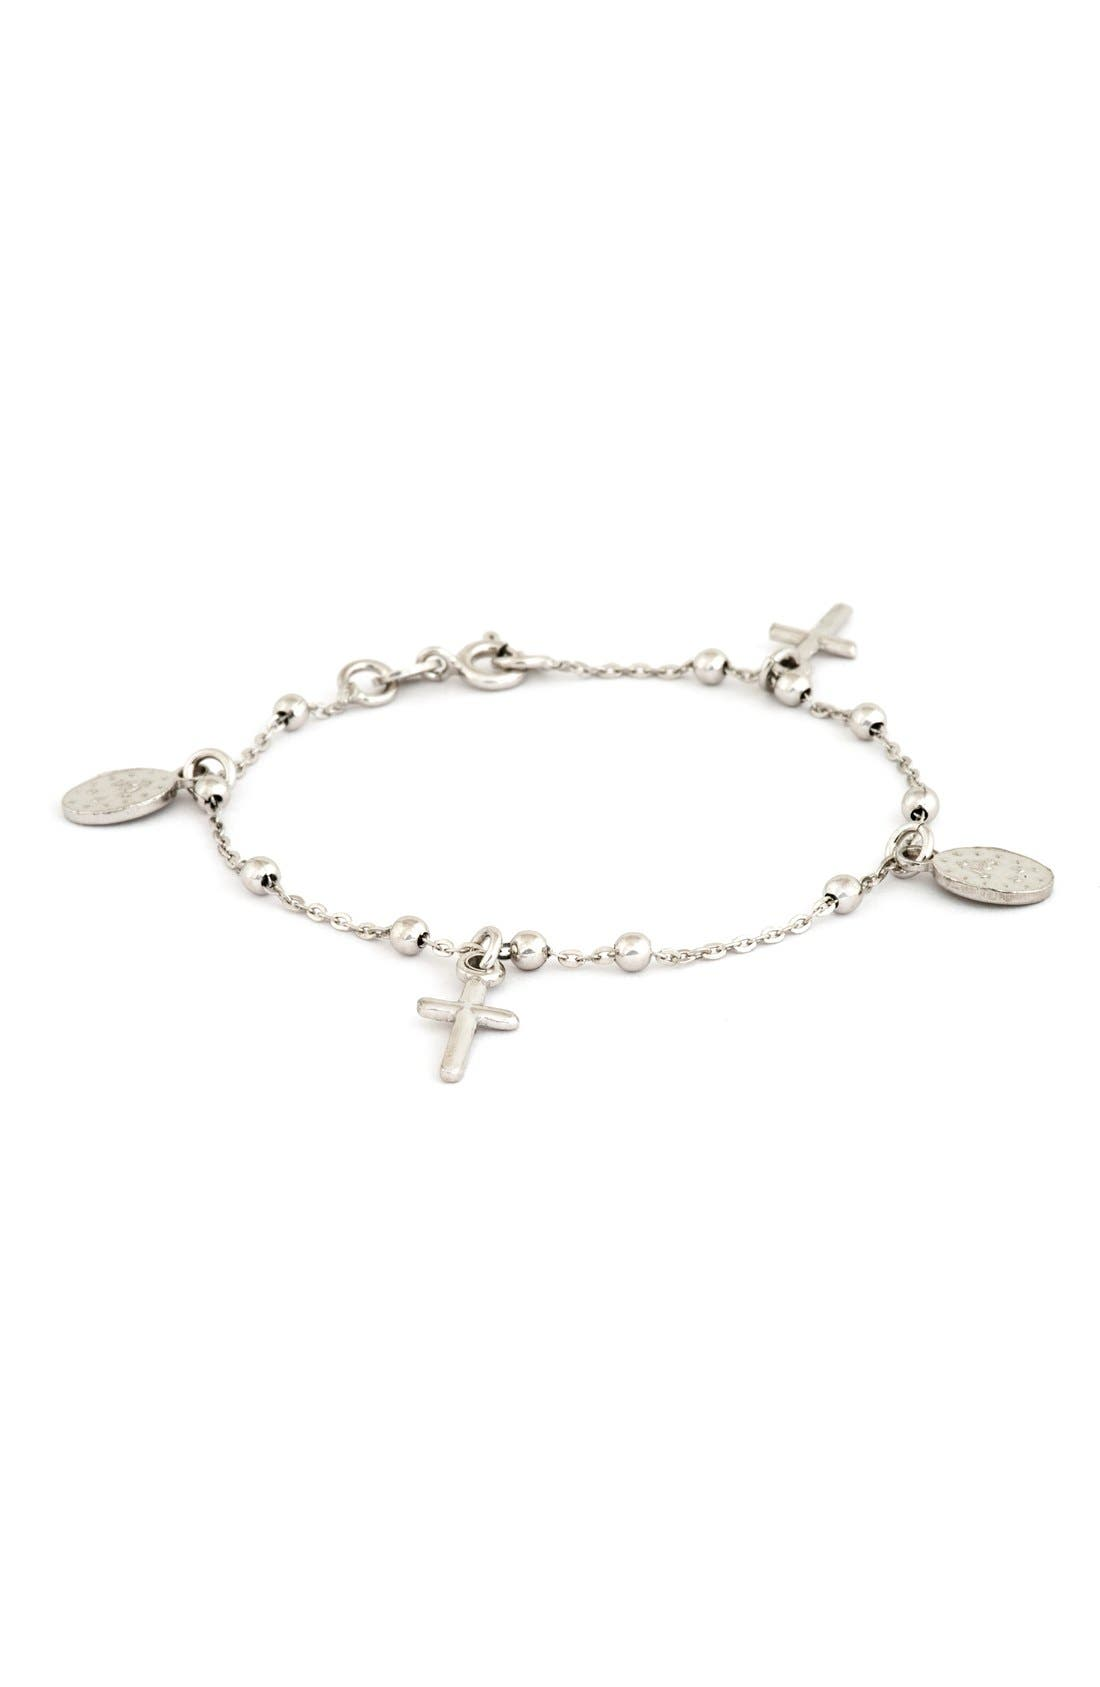 Cross & Miraculous Medal Sterling Silver Charm Bracelet,                             Main thumbnail 1, color,                             NONE